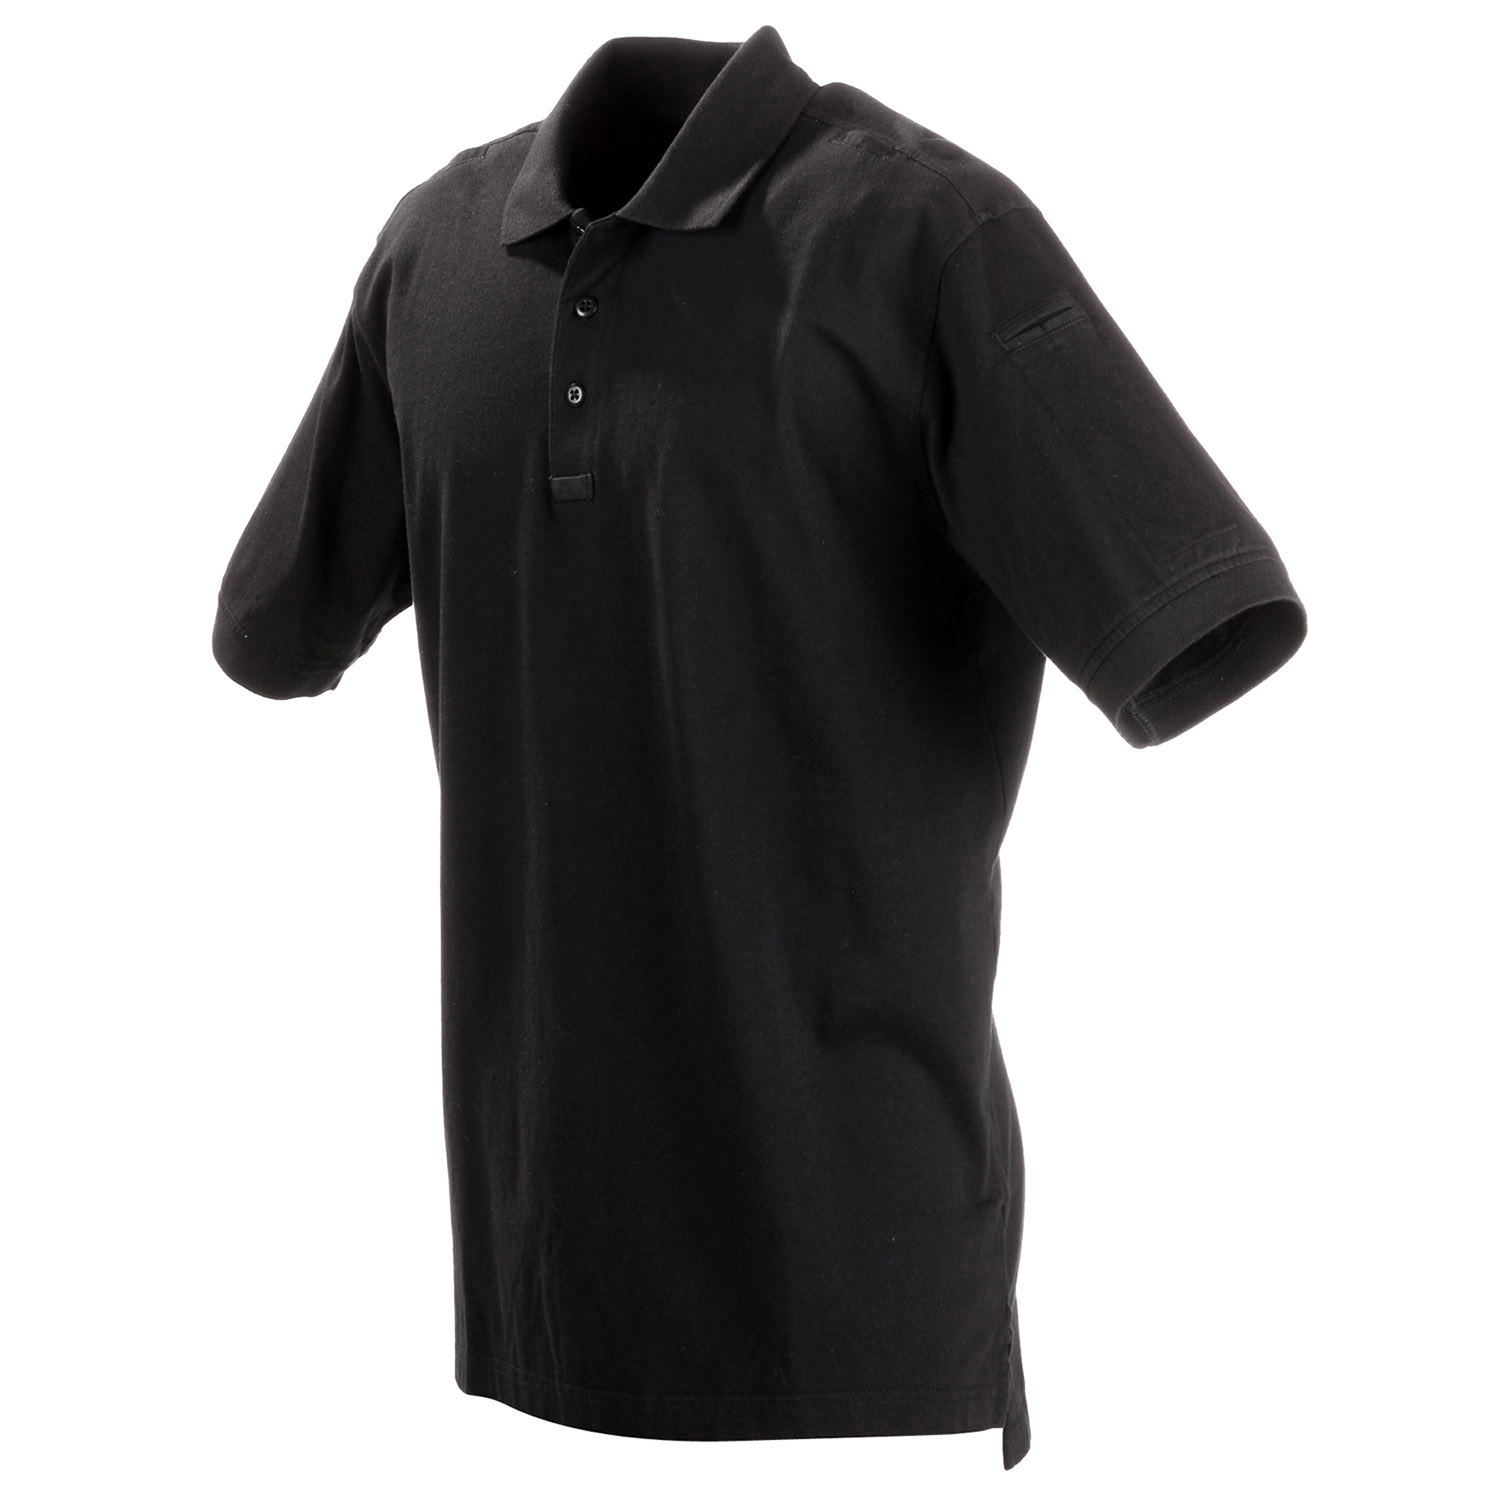 5.11 Tactical Polo